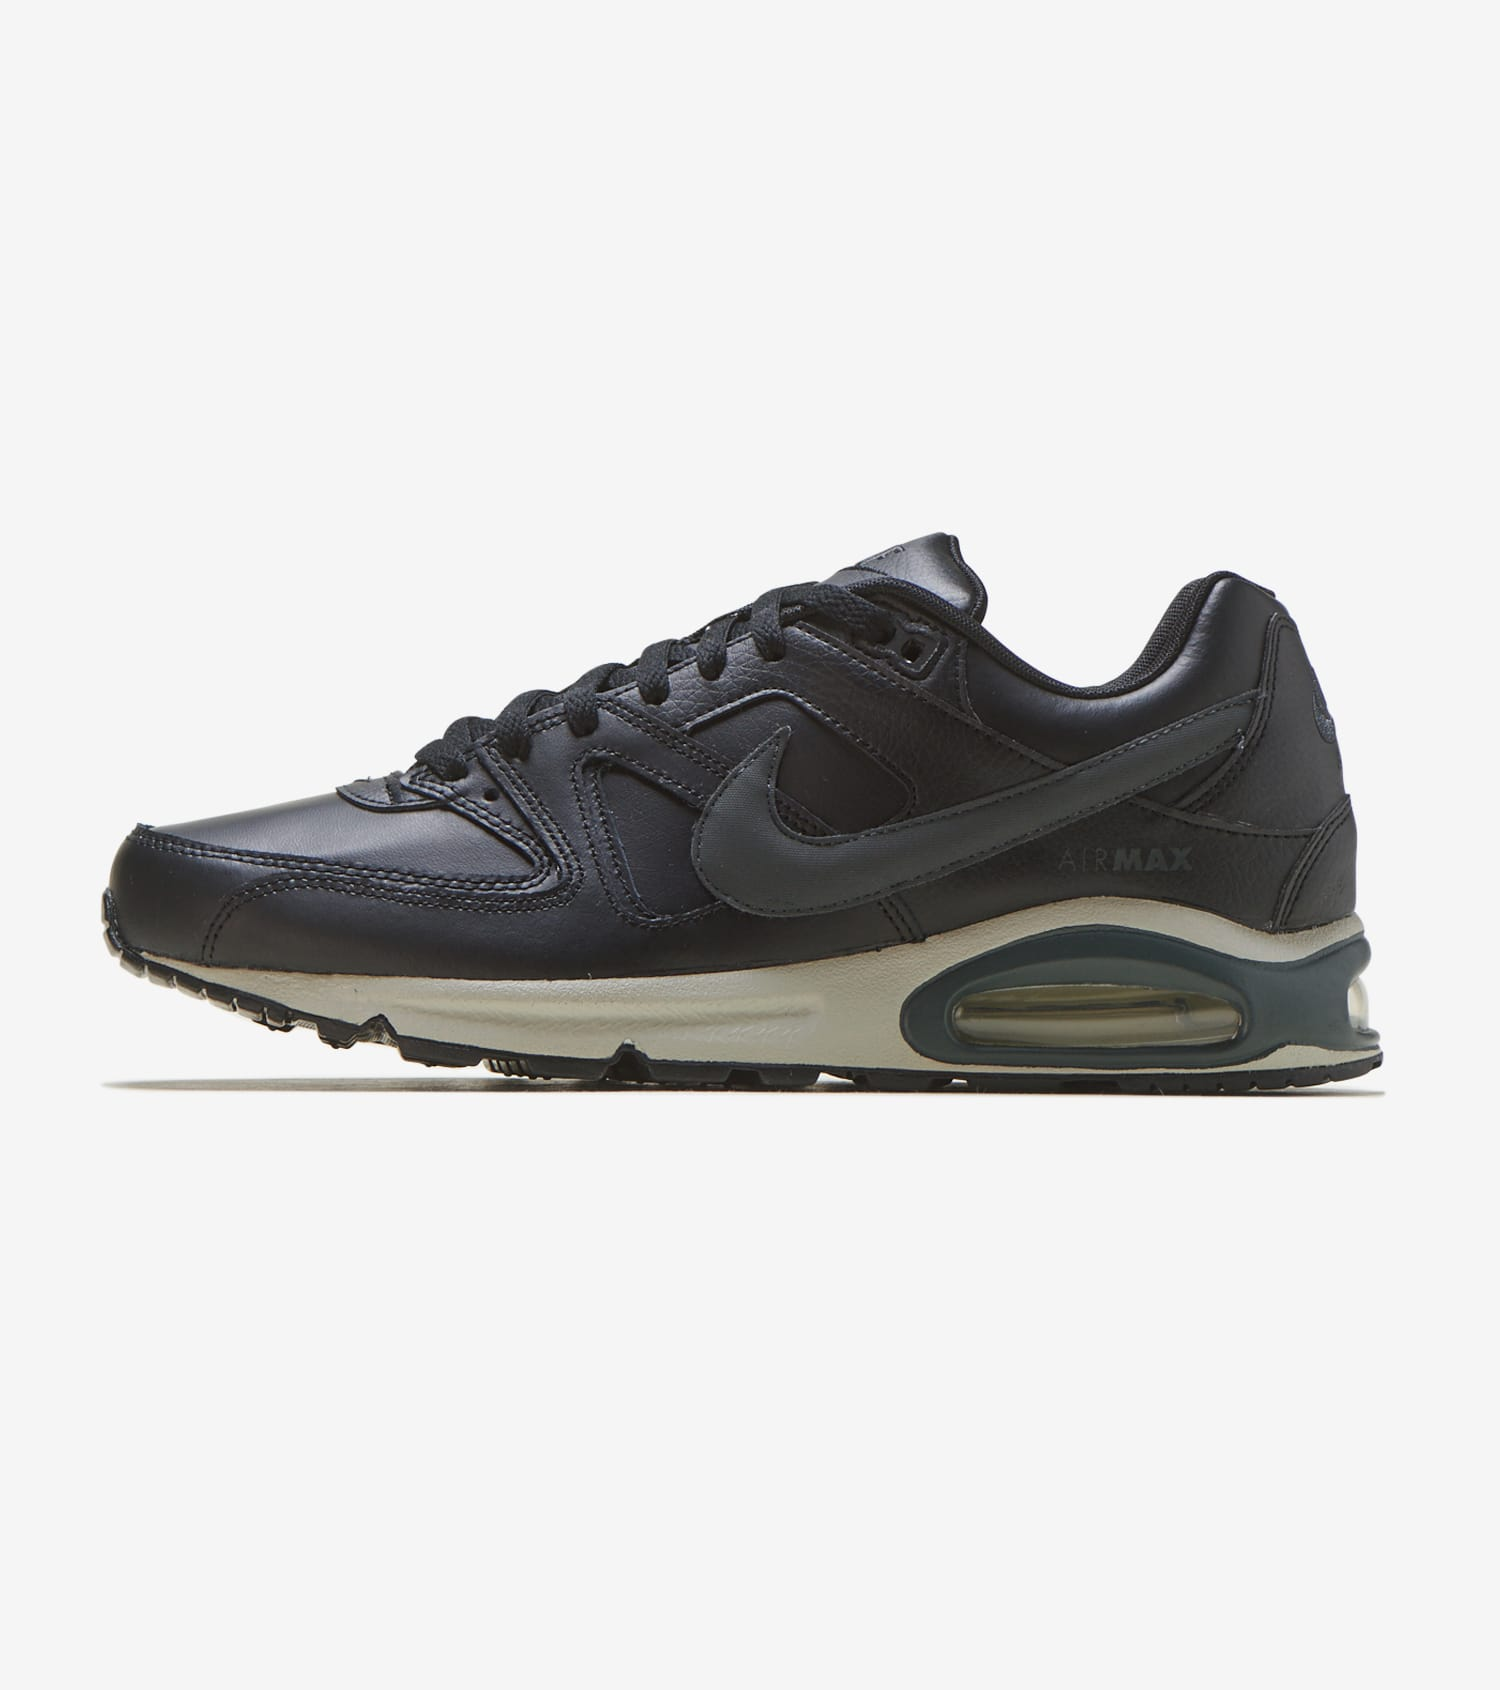 Nike Air Max Command Leather (Black) 749760 001 | Jimmy Jazz